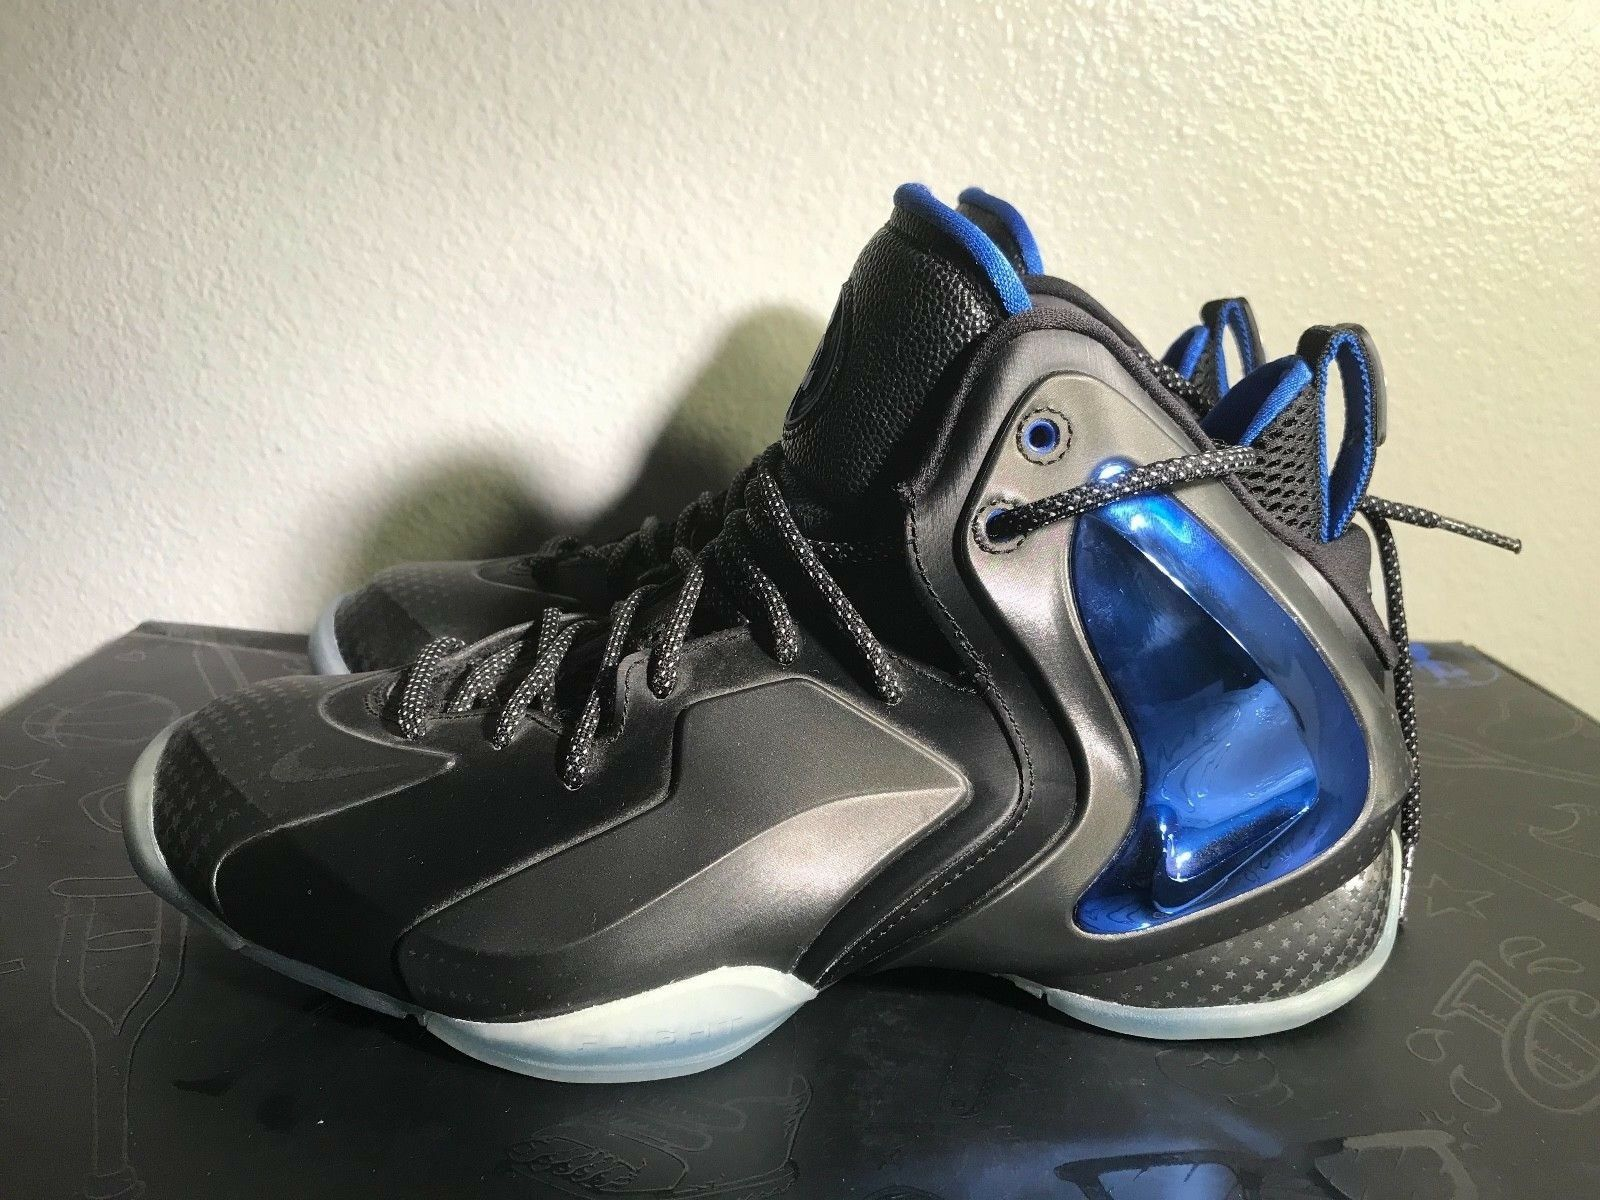 Nike Shooting Stars Pack 679766900 The Lil Penny Posite SZ 9 Deadstock Authentic